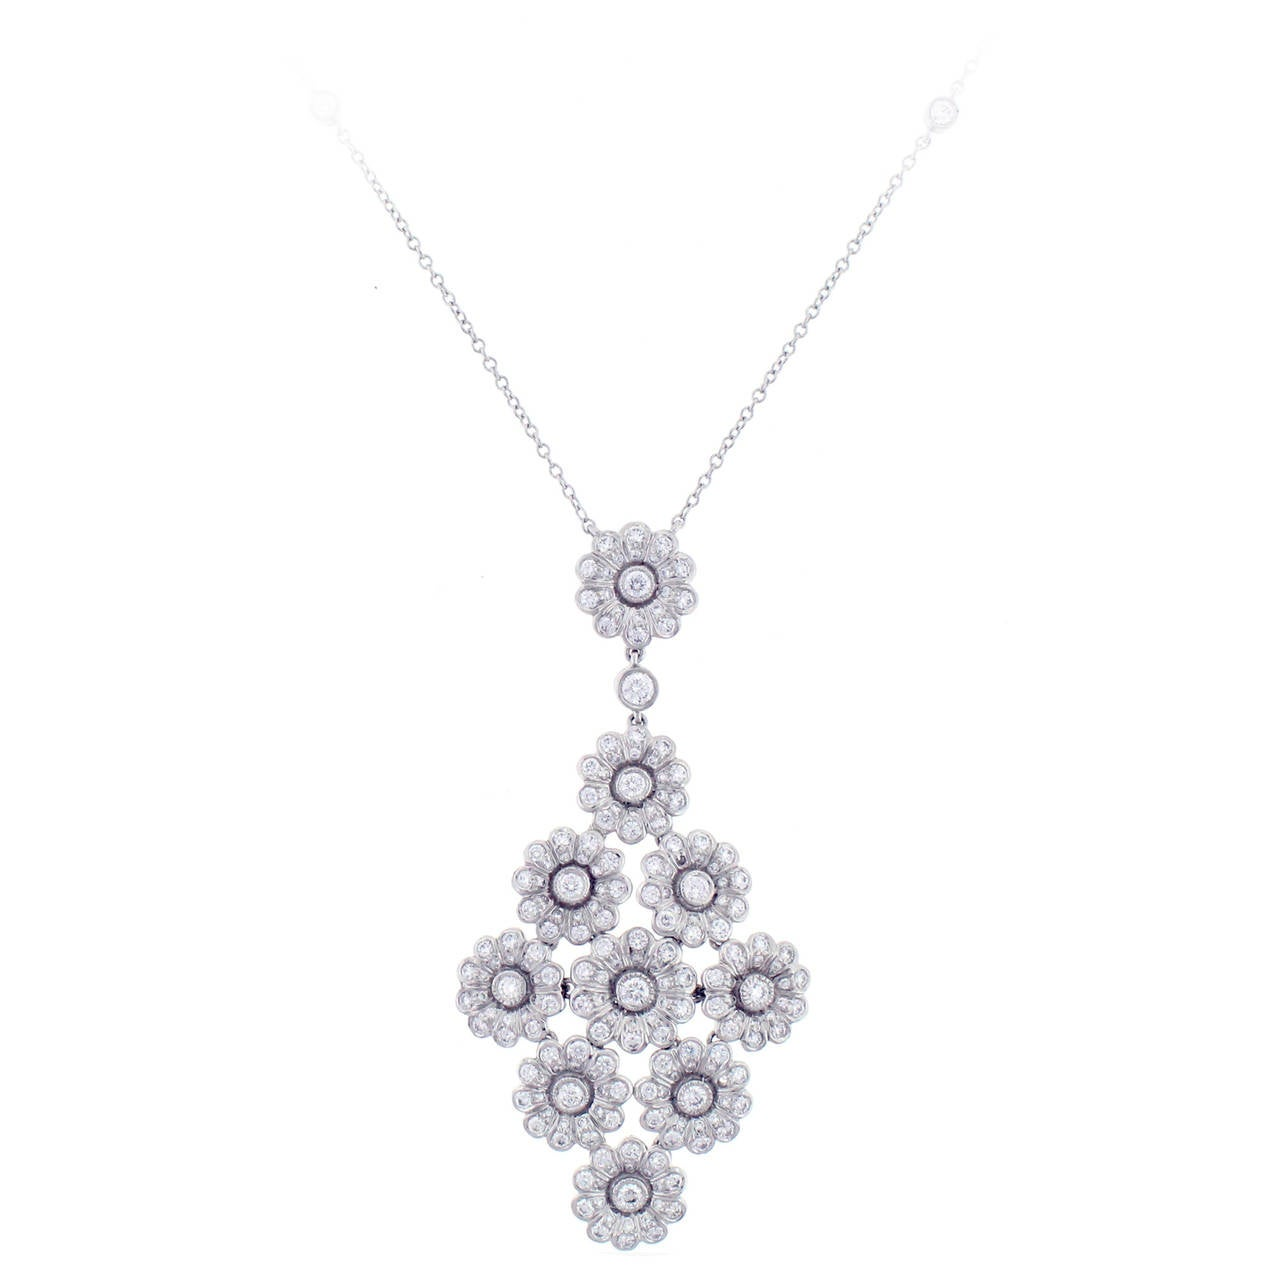 Tiffany & Co. Diamond Platinum Flower Necklace